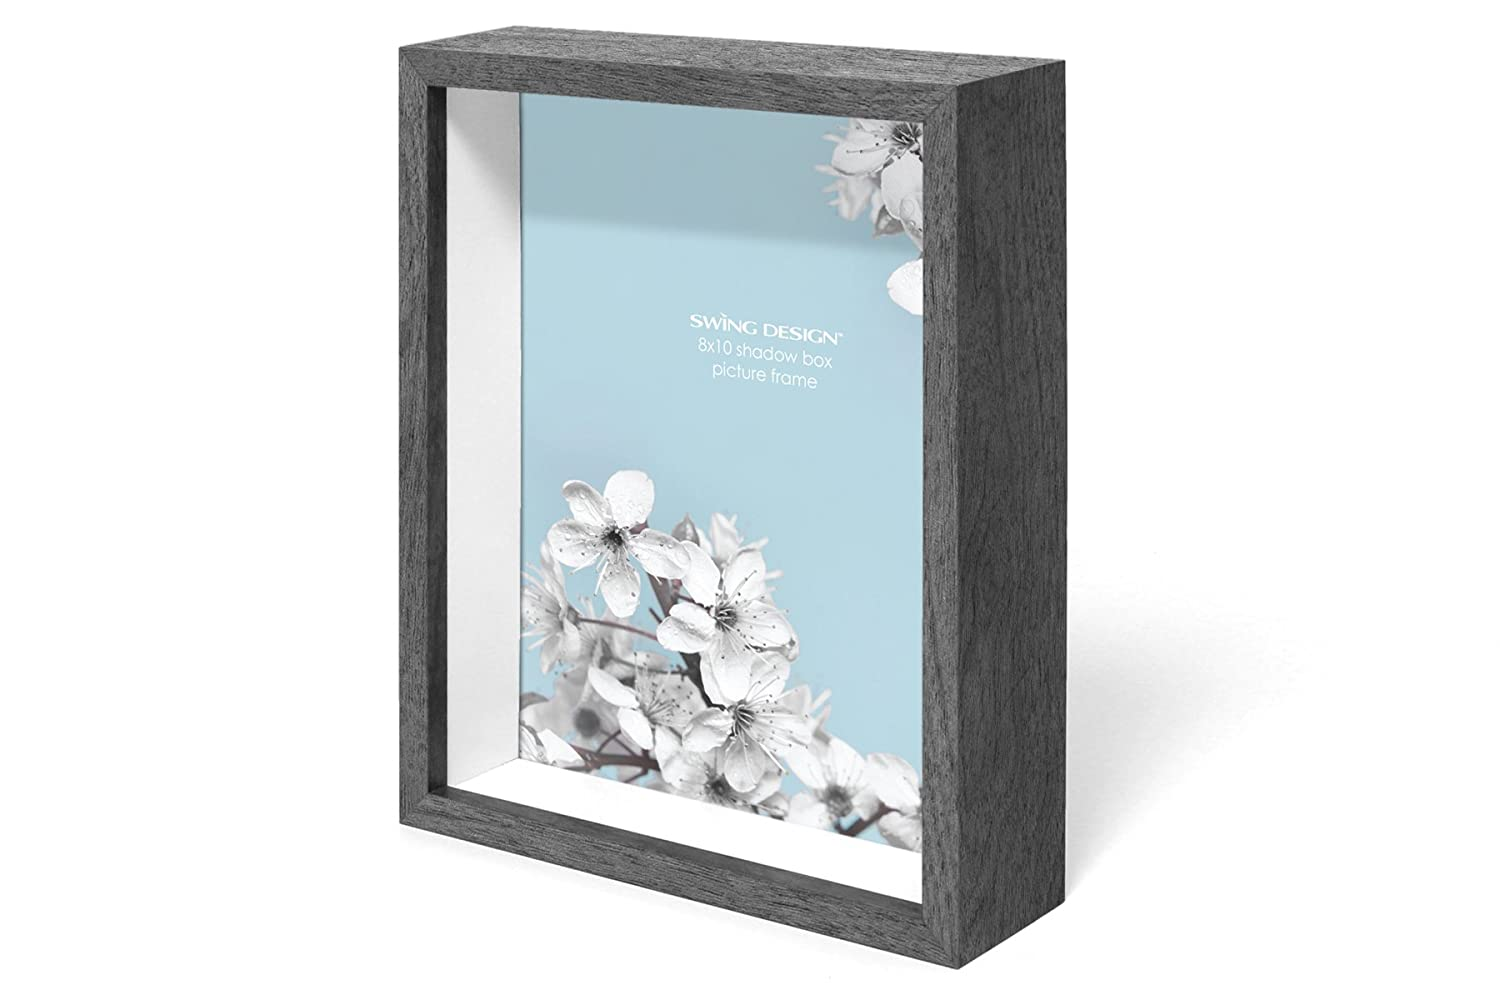 swing design chroma shadow box frame 8 by 10 inch charcoal gray